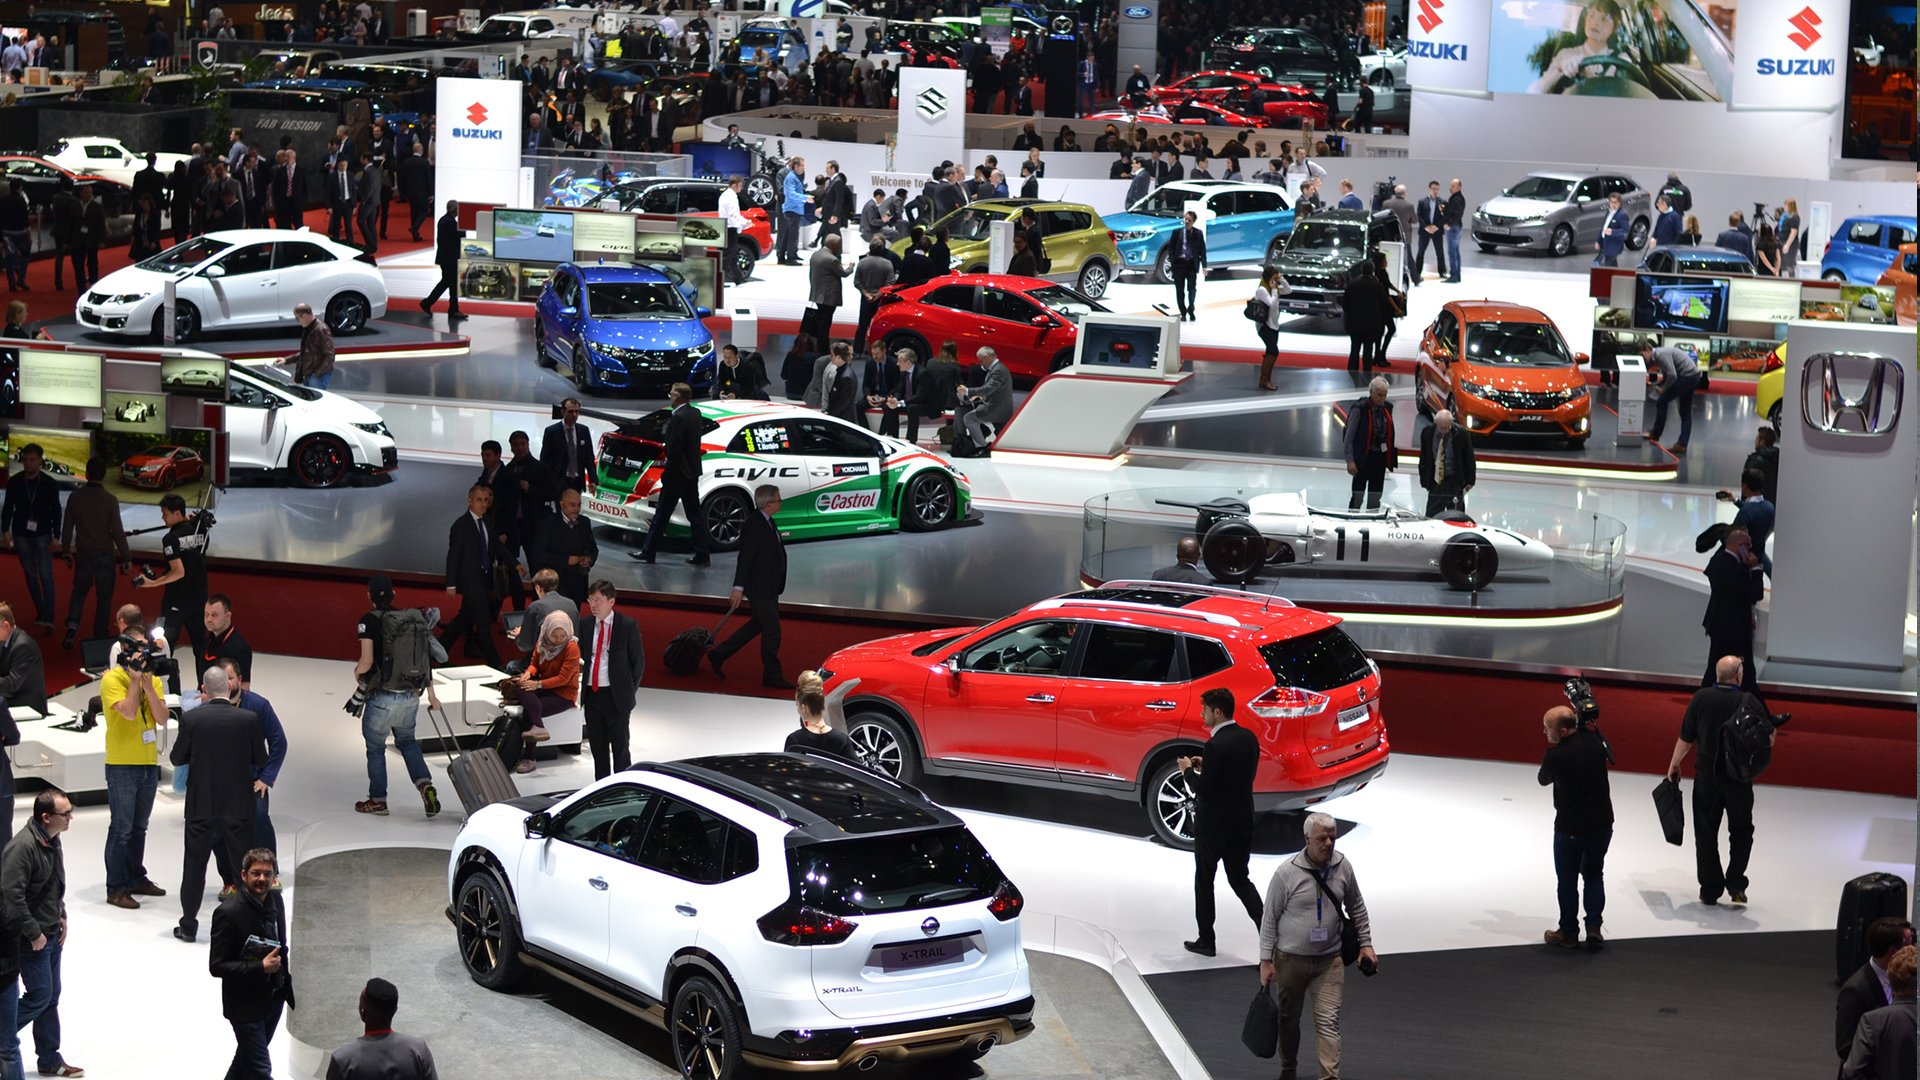 The best car shows in the UK